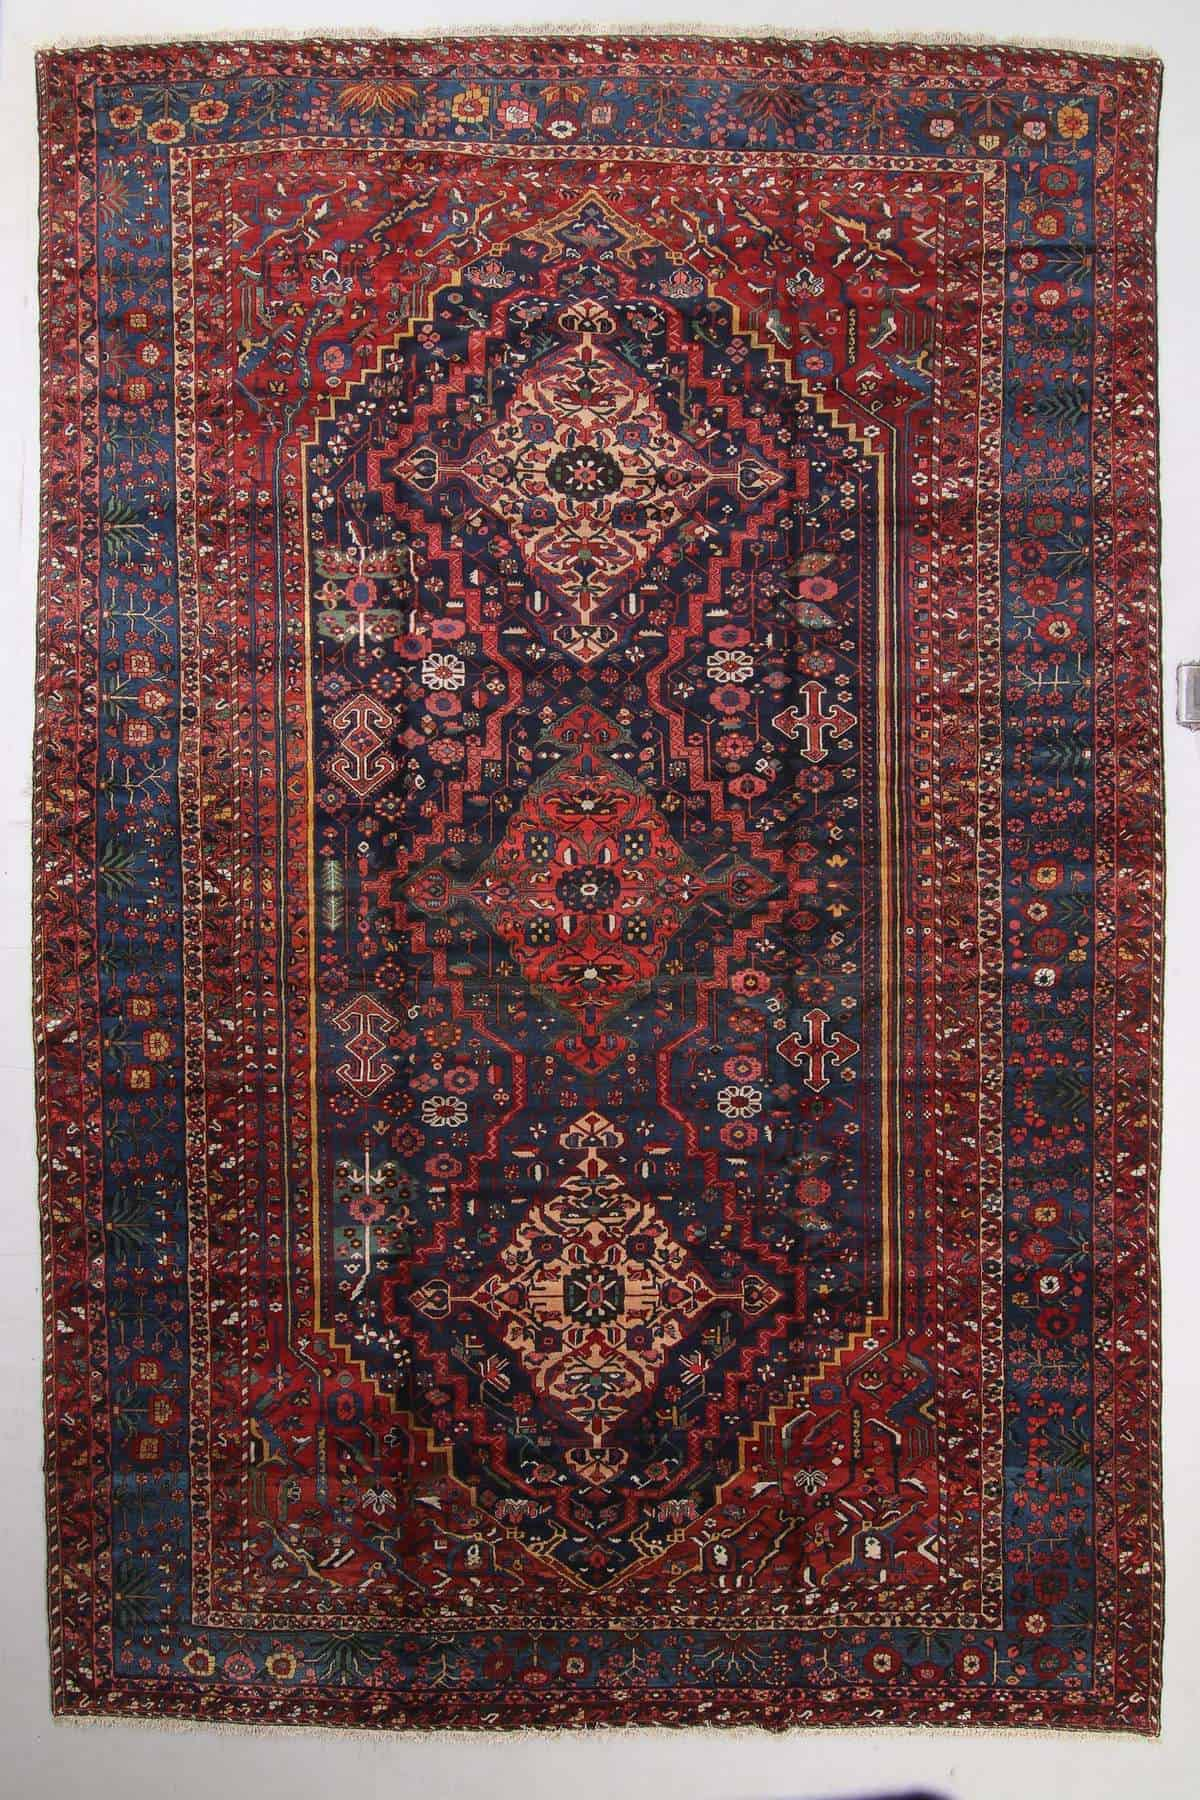 Lot 0102 Antique Baktiari Rug Persia